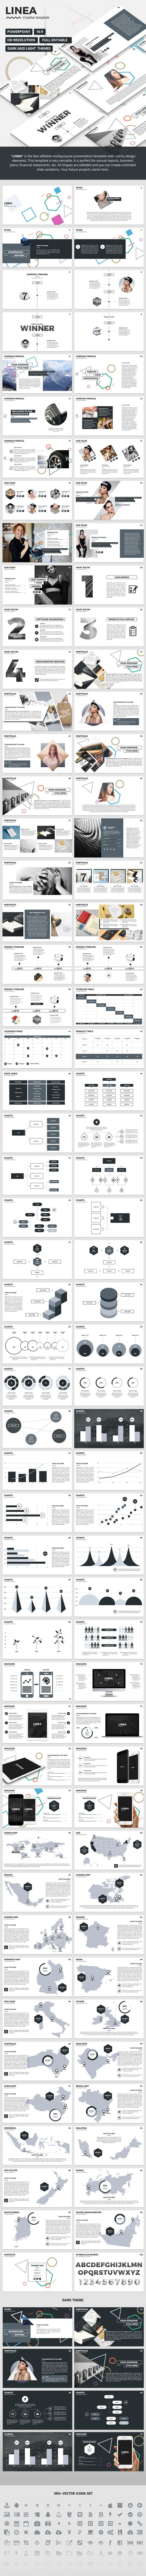 Linea creative powerpoint presentation template creative linea creative powerpoint presentation template alramifo Image collections